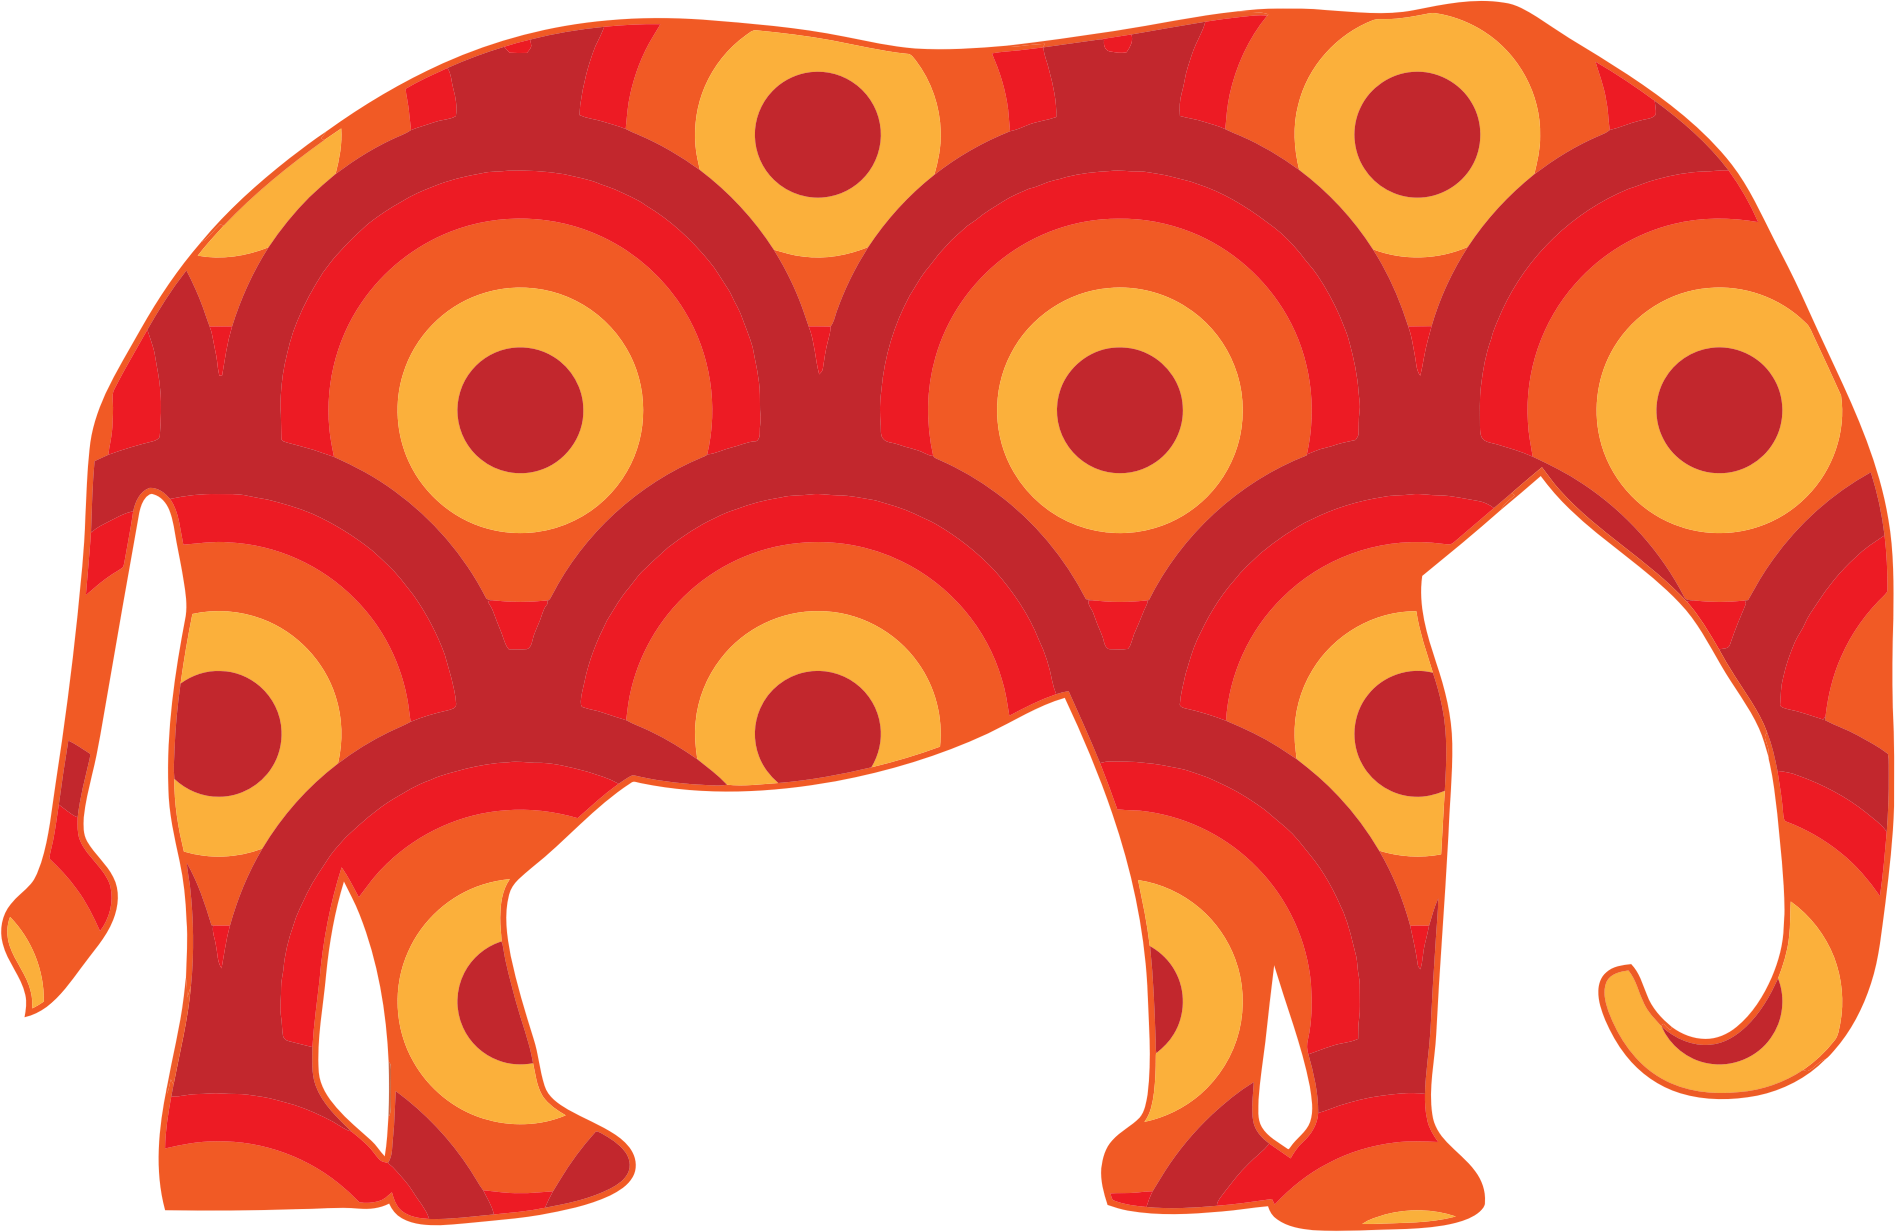 Clipart - Retro Circles Elephant